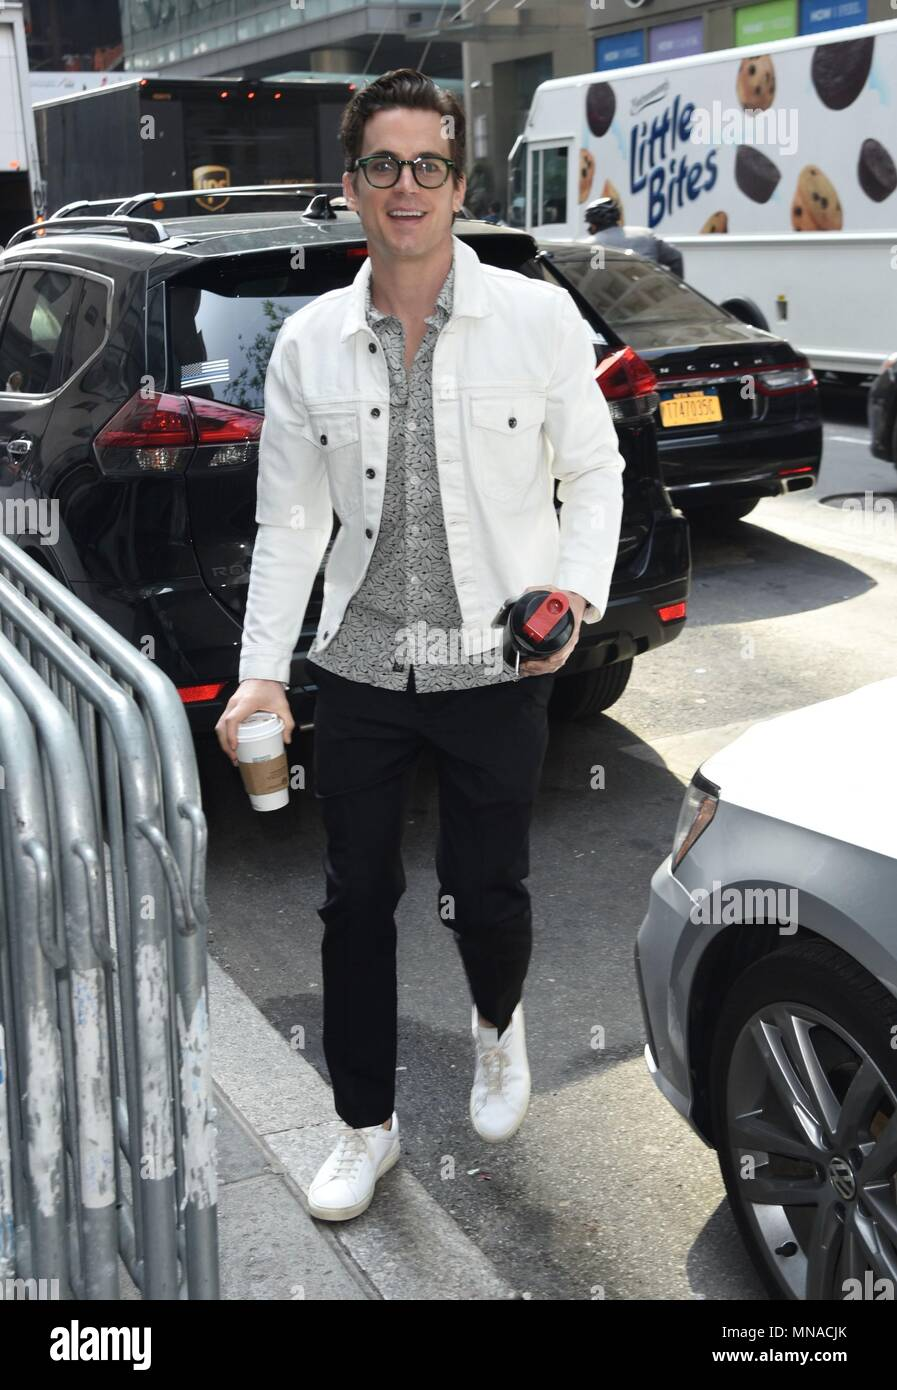 New York, NY, USA. 15th May, 2018. Matt Bomer appears on the Today Show to promote his Broadway play THE BOYS IN THE BAND out and about for Celebrity Candids - TUE, New York, NY May 15, 2018. Credit: Derek Storm/Everett Collection/Alamy Live News - Stock Image